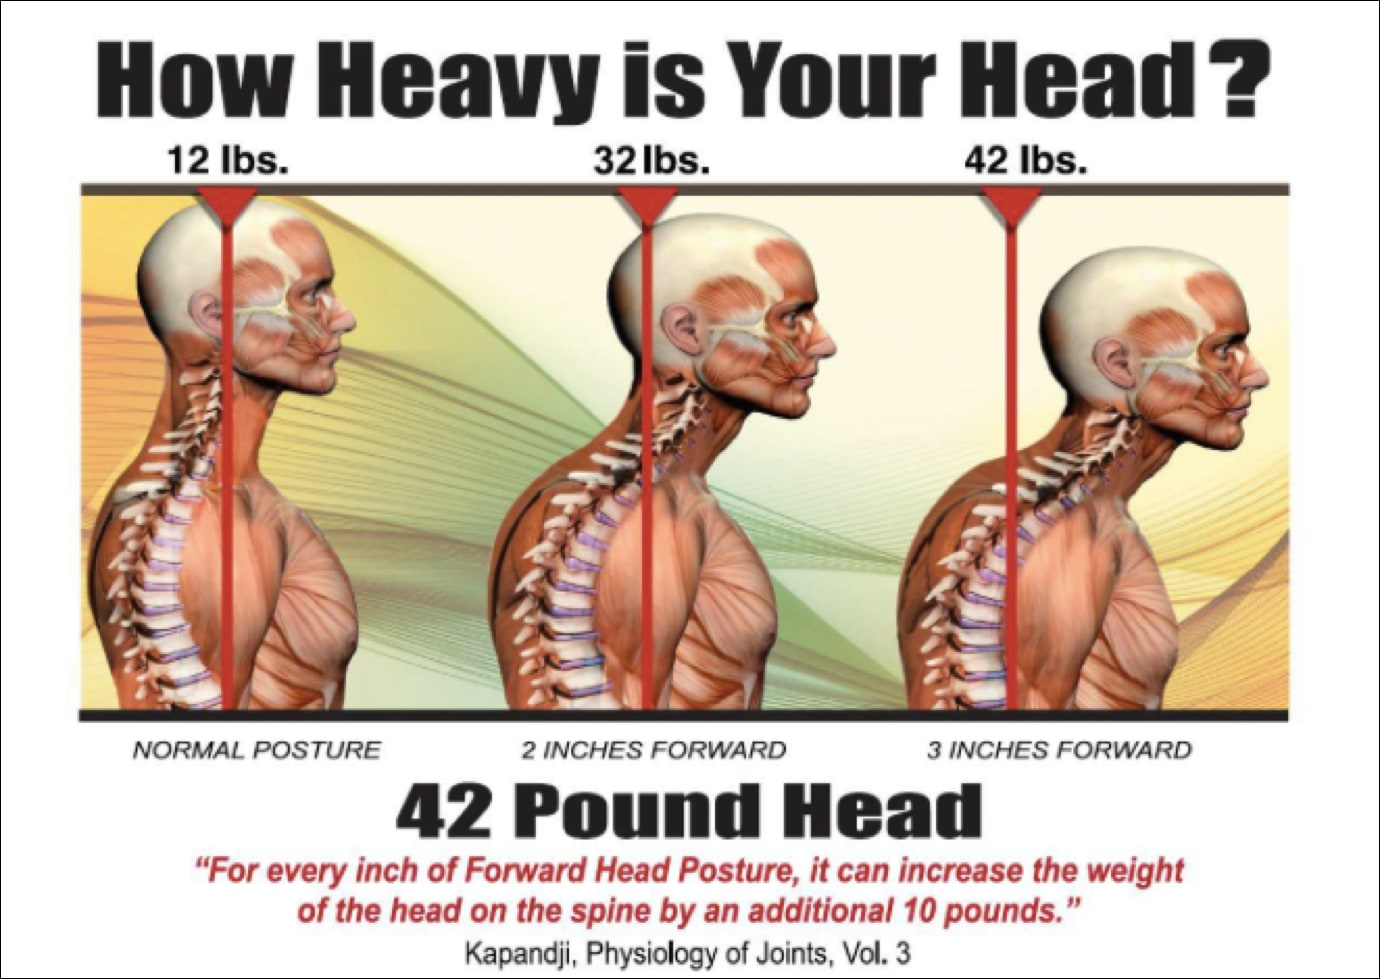 Image of forward head posture.